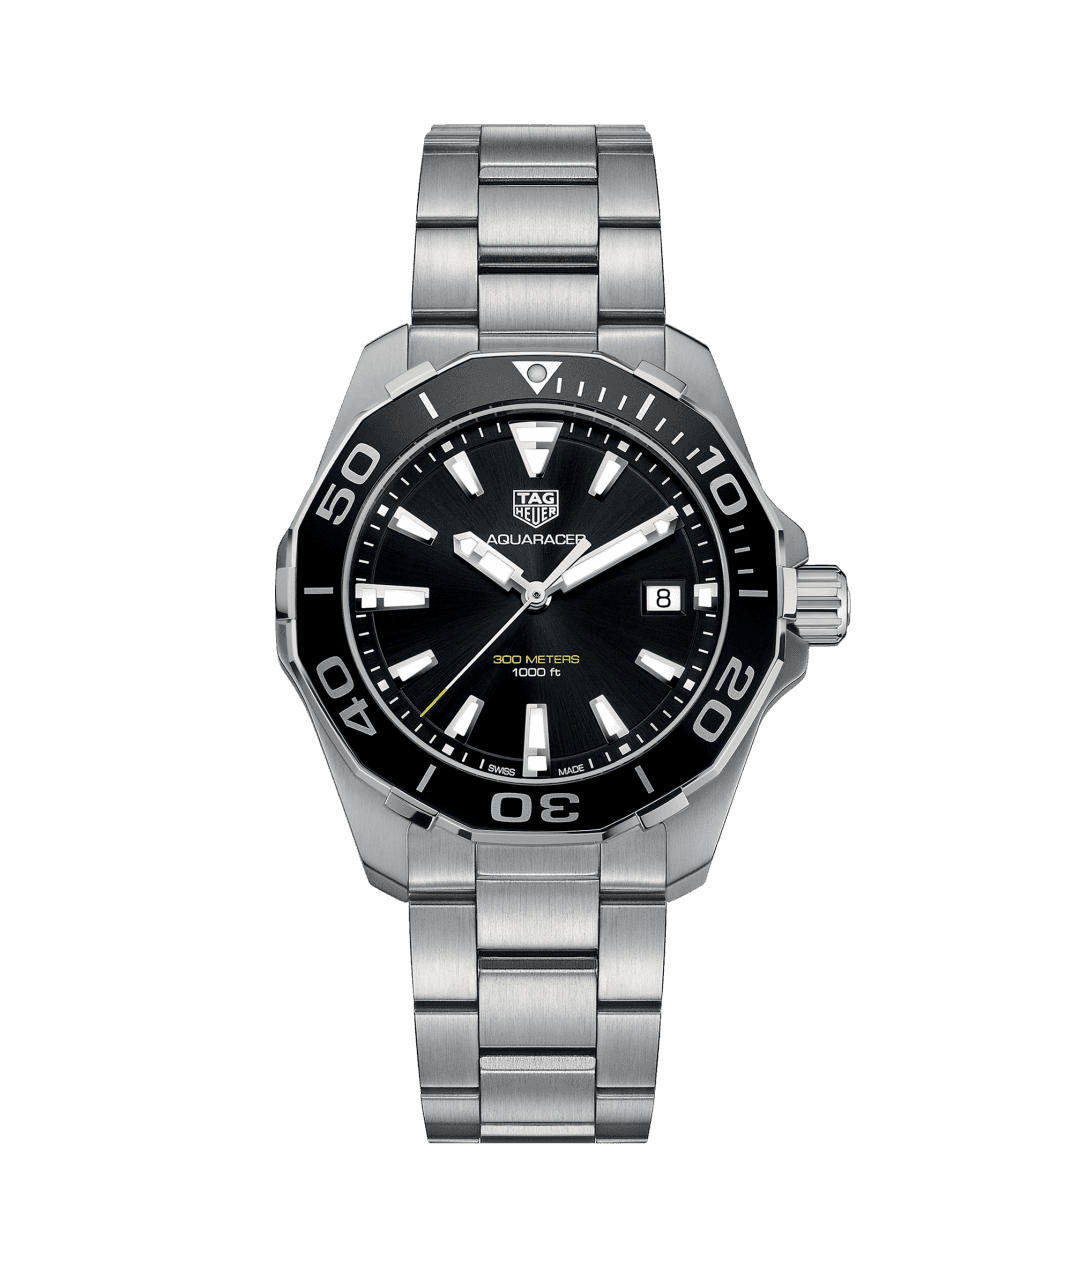 Aquaracer Quartz (41mm)